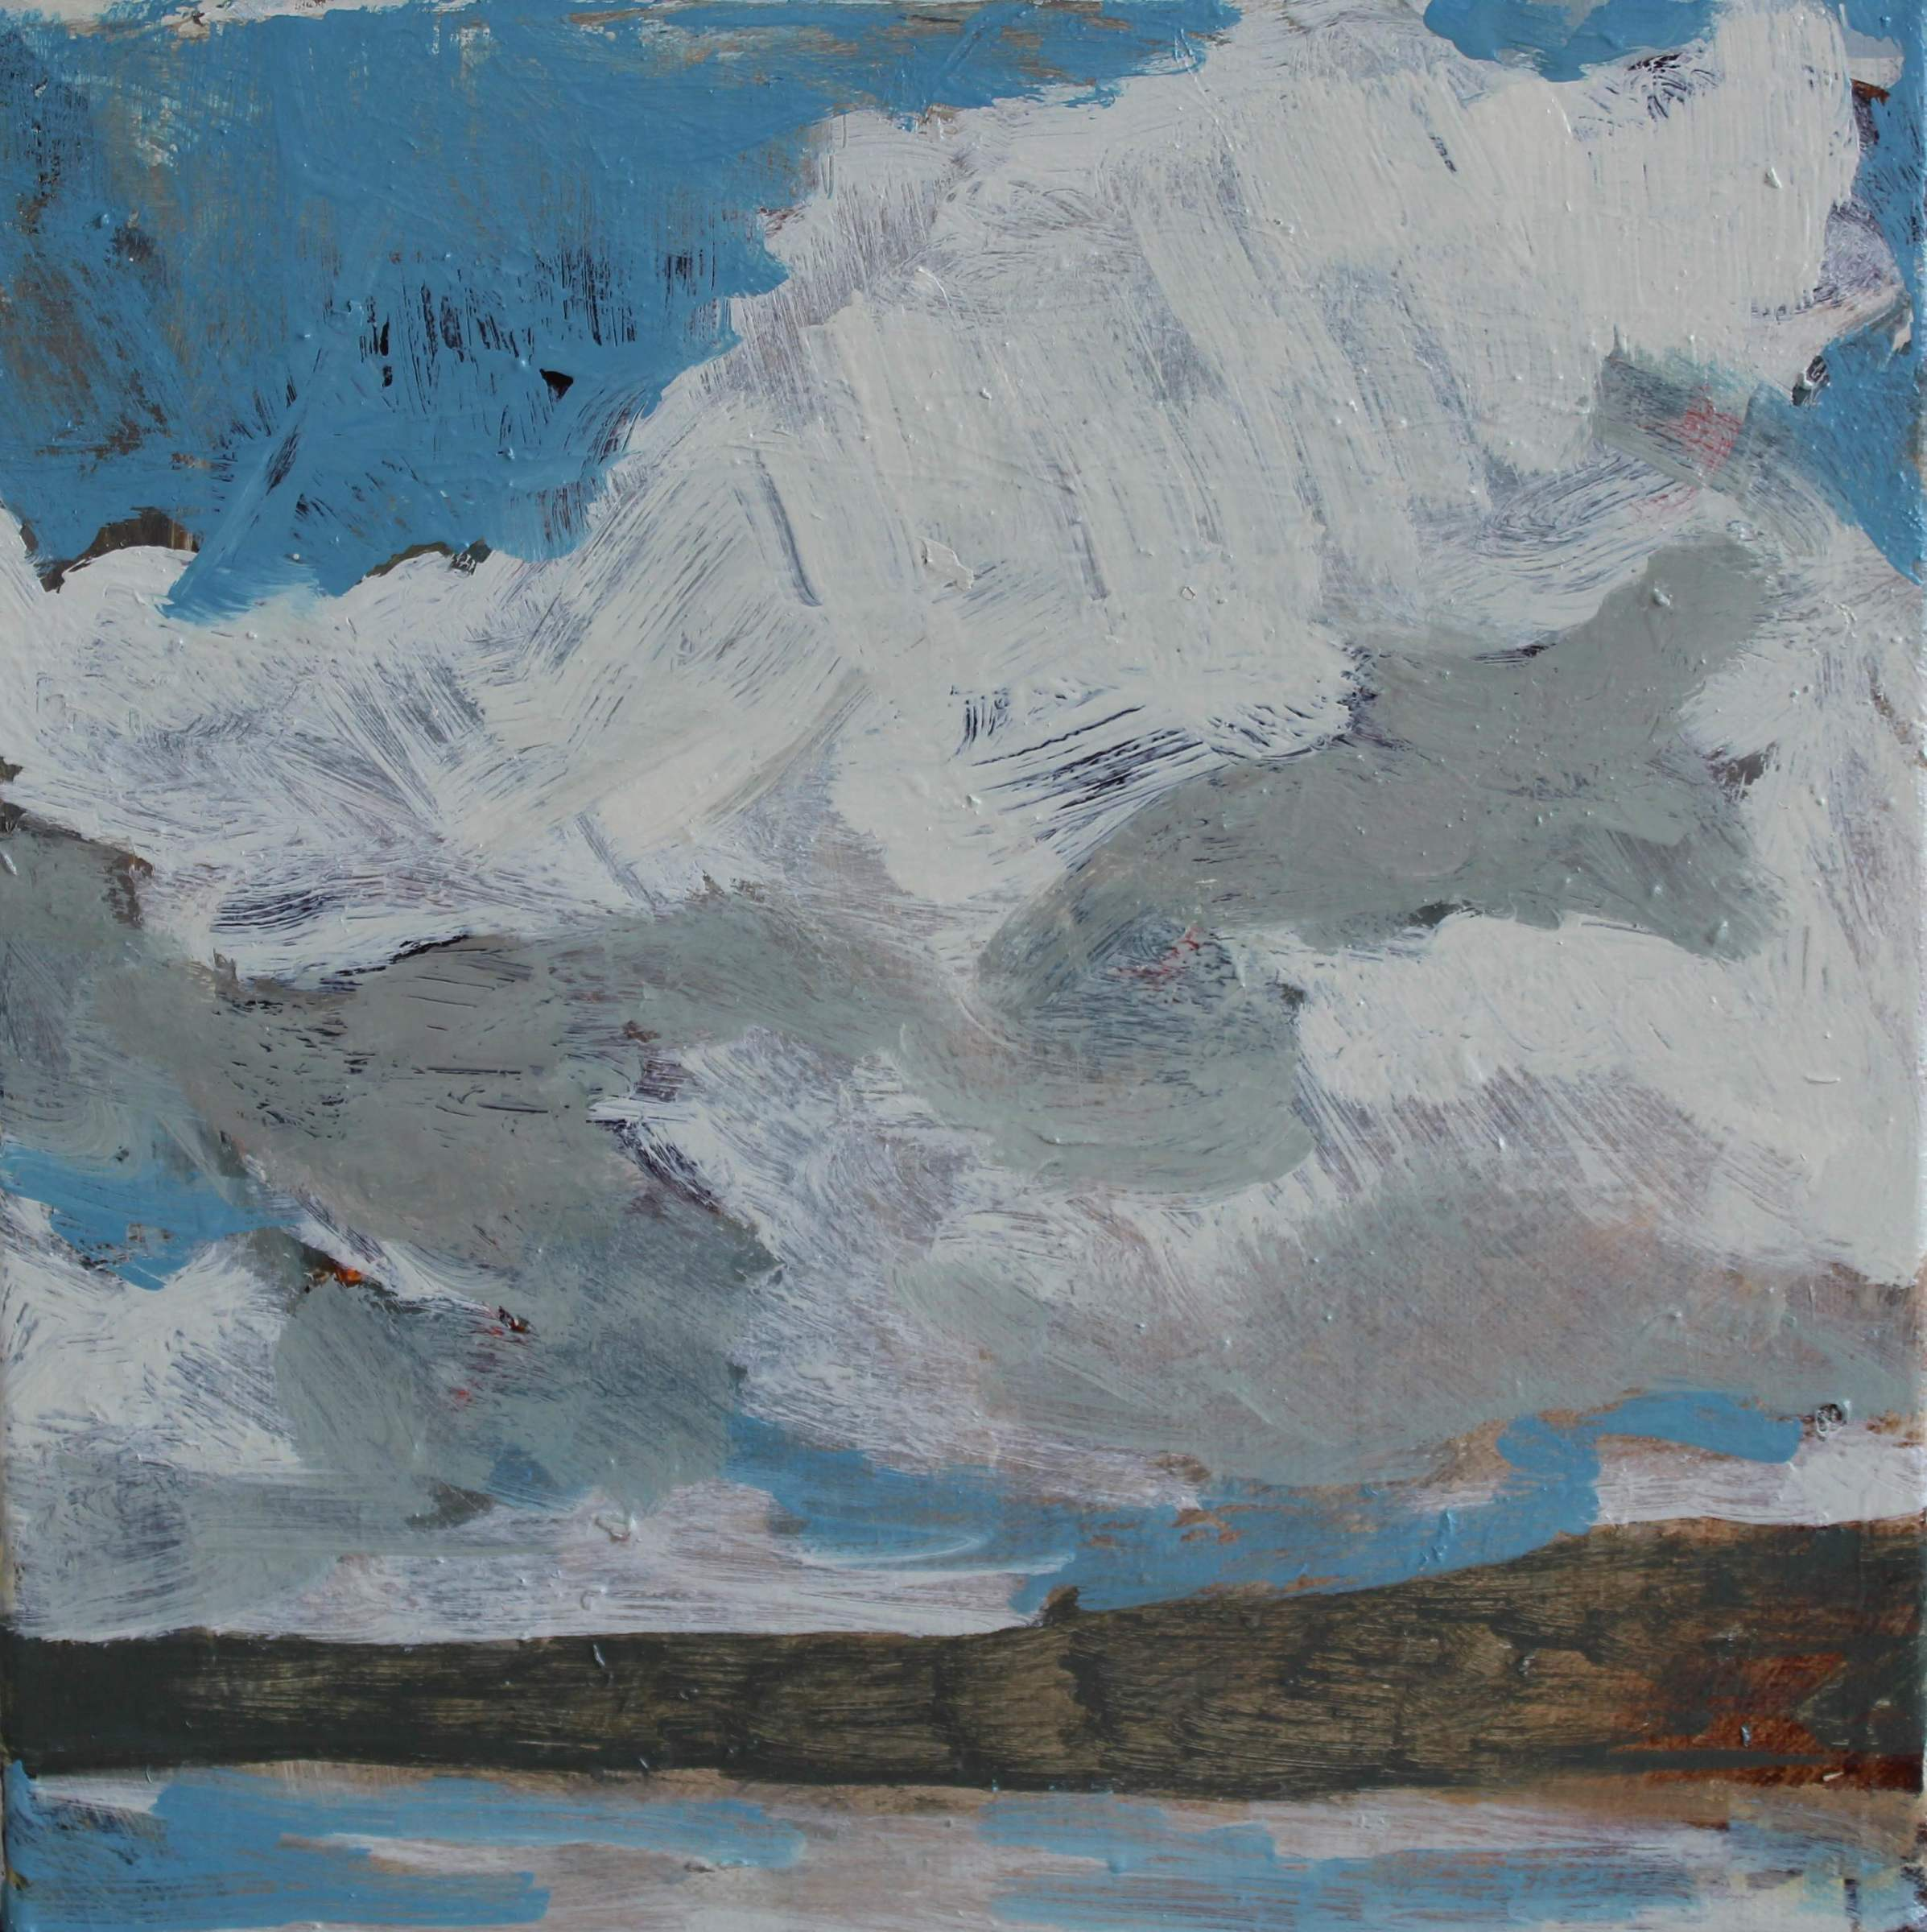 "<span class=""link fancybox-details-link""><a href=""/artists/159-sara-dudman-rwa/works/5480-sara-dudman-rwa-cumulus-cloud-towards-kynance-cove-study-1-2018/"">View Detail Page</a></span><div class=""artist""><strong>Sara Dudman RWA</strong></div> <div class=""title""><em>Cumulus Cloud (Towards Kynance Cove) Study 1</em>, 2018</div> <div class=""medium"">oil on canvas</div> <div class=""dimensions"">h. 30 x w. 30 cm<br /> Float-mounted behind glass (frame dimensions: h. 40 x w. 40 cm)</div><div class=""price"">£690.00</div><div class=""copyright_line"">OwnArt: £ 69 x 10 Months, 0% APR</div>"